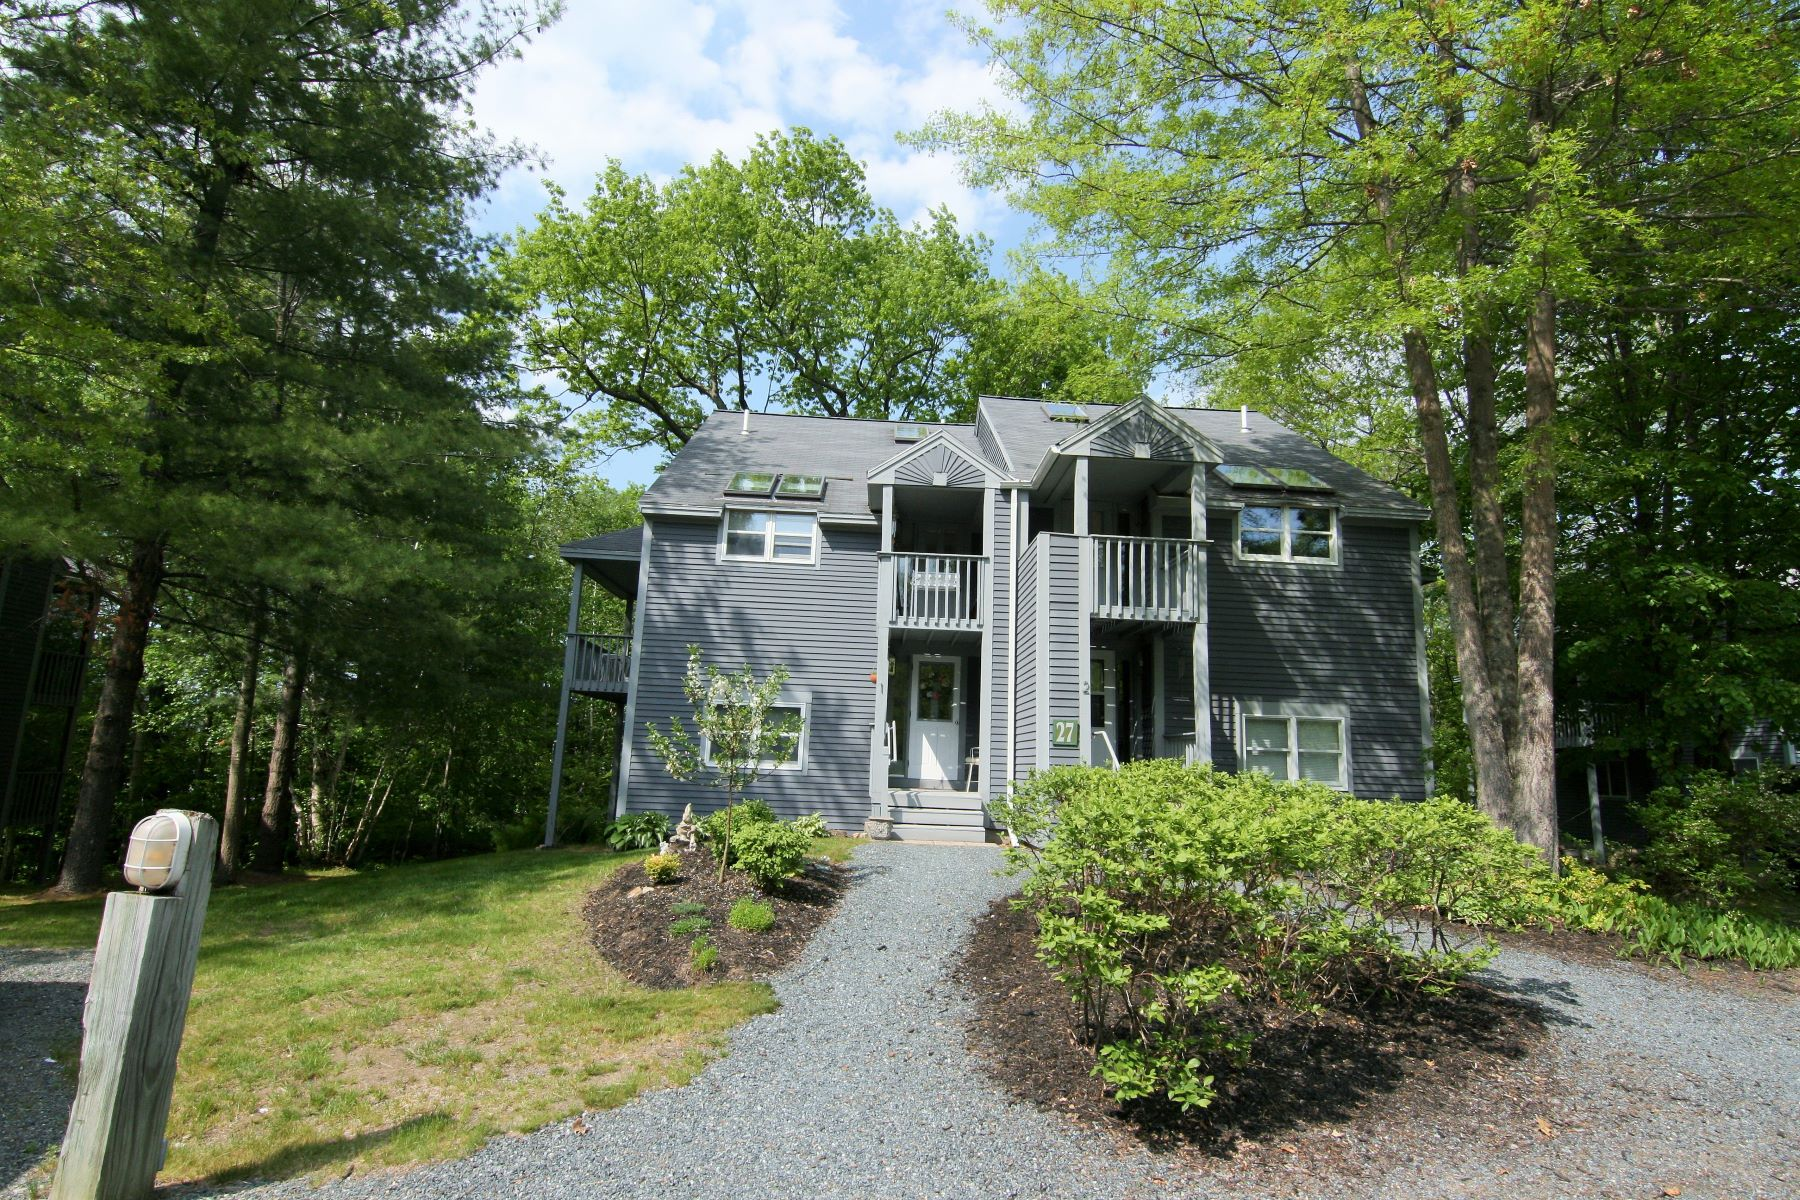 Condominium for Sale at All The Amenities of Lake Living 27 Landing Rd 2 Enfield, New Hampshire 03748 United States